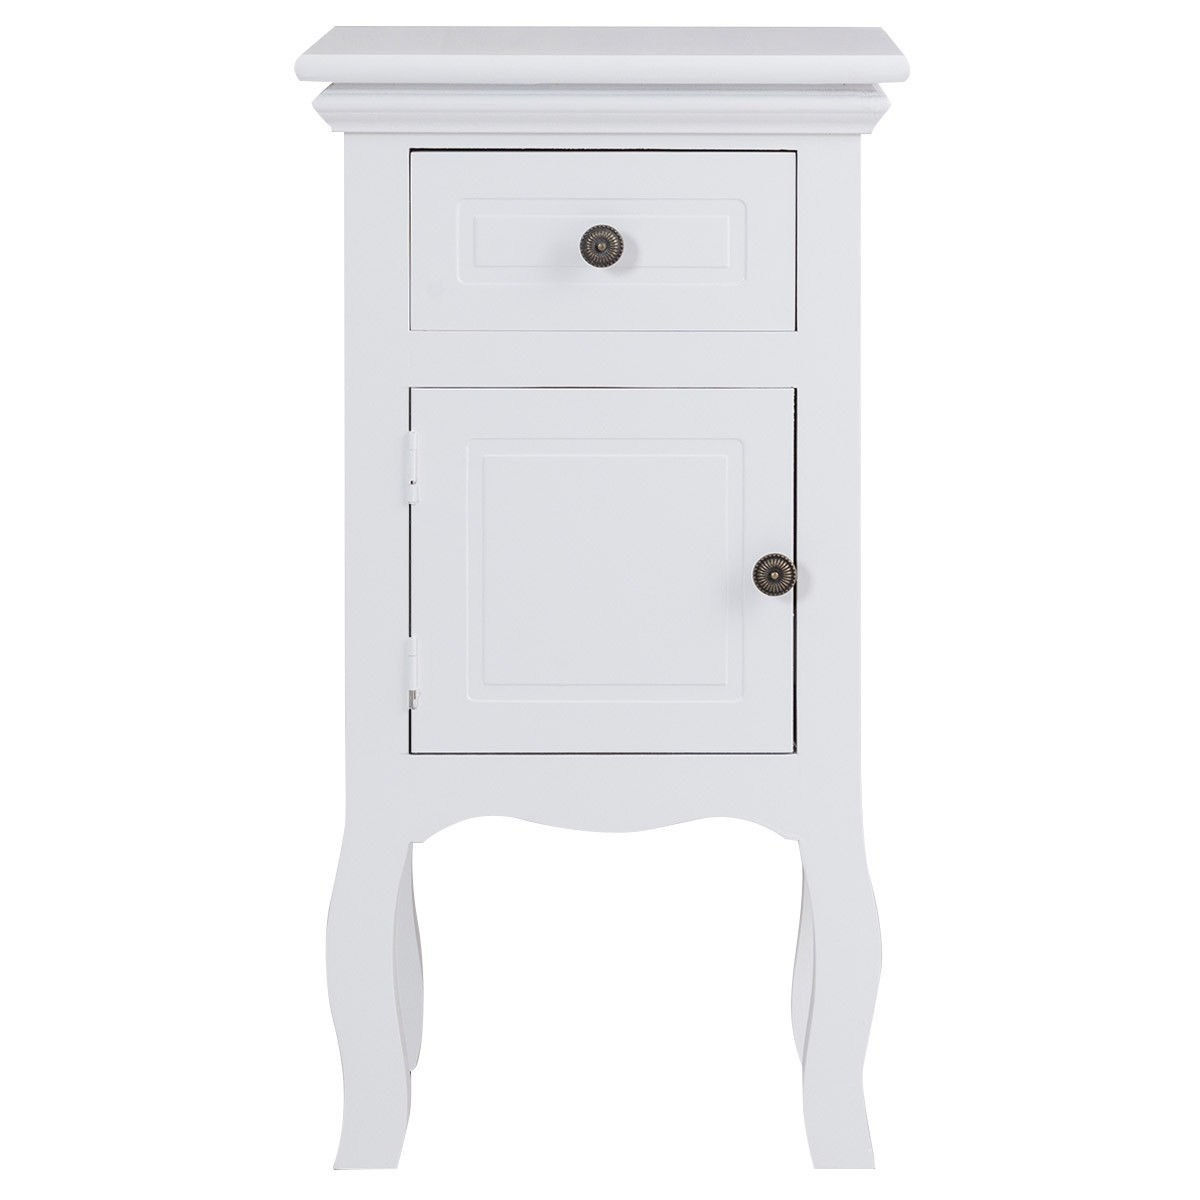 way white nightstand storage drawer and cabinet wood end for bedroom accent table with free shipping today dale tiffany buffet lamps small entryway console espresso furniture